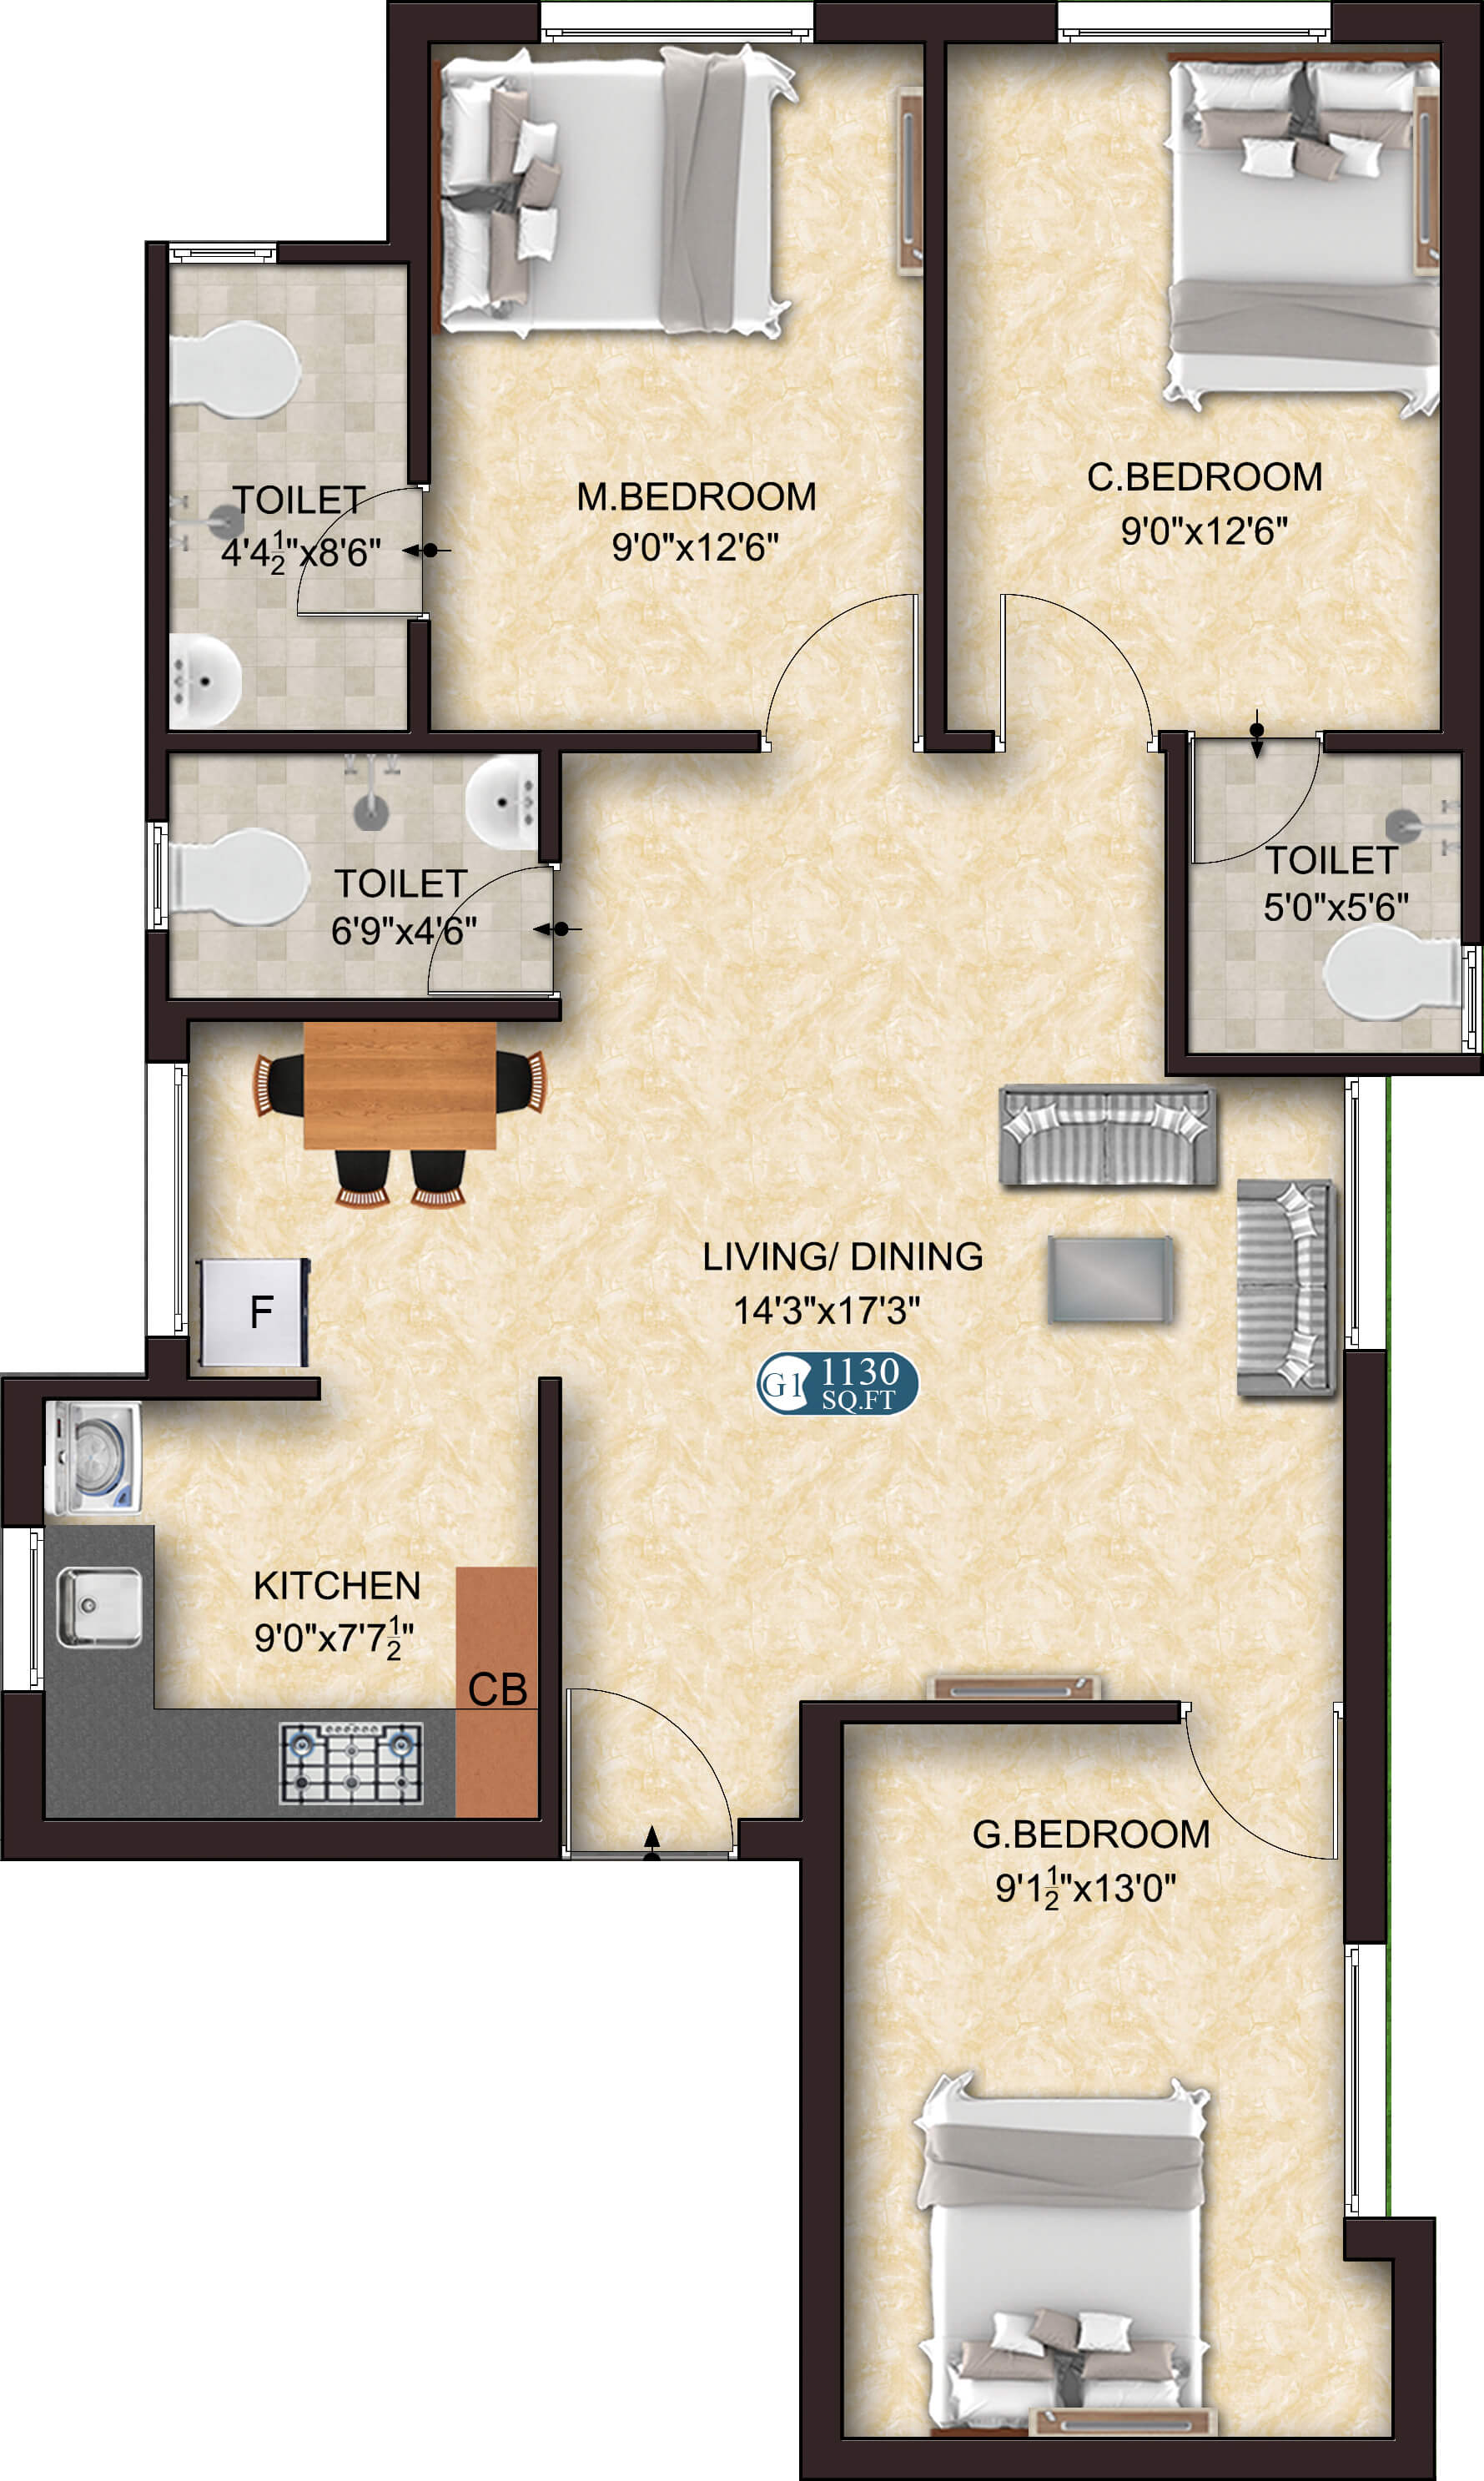 Style G1 3BHK 1130 - new flats for sale in sholinganallur